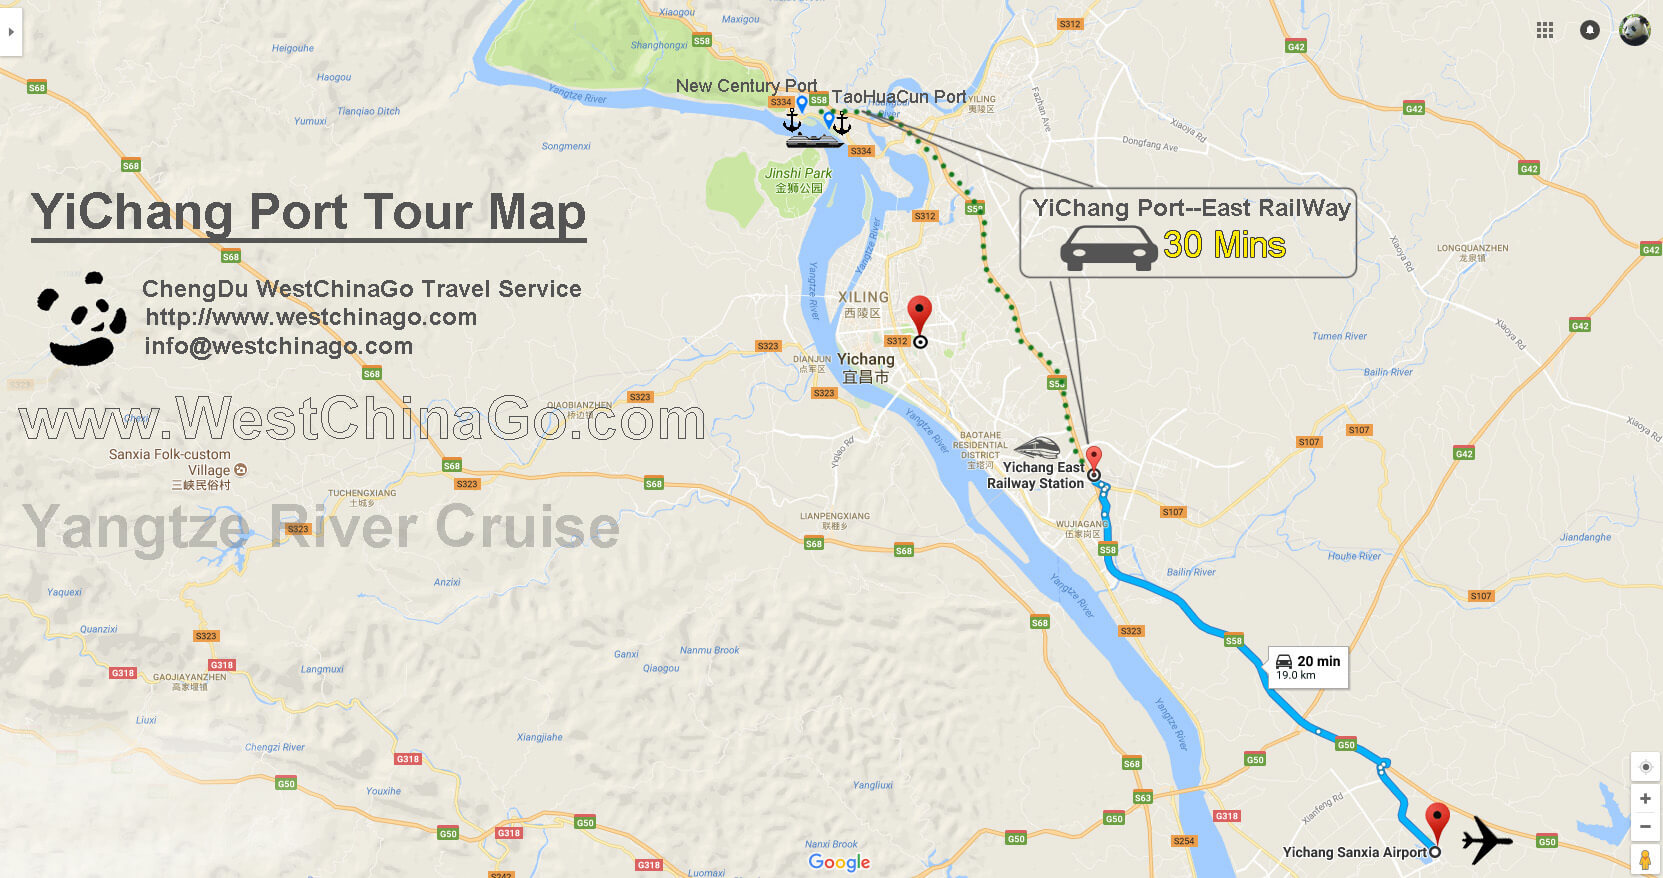 yichang port tour map